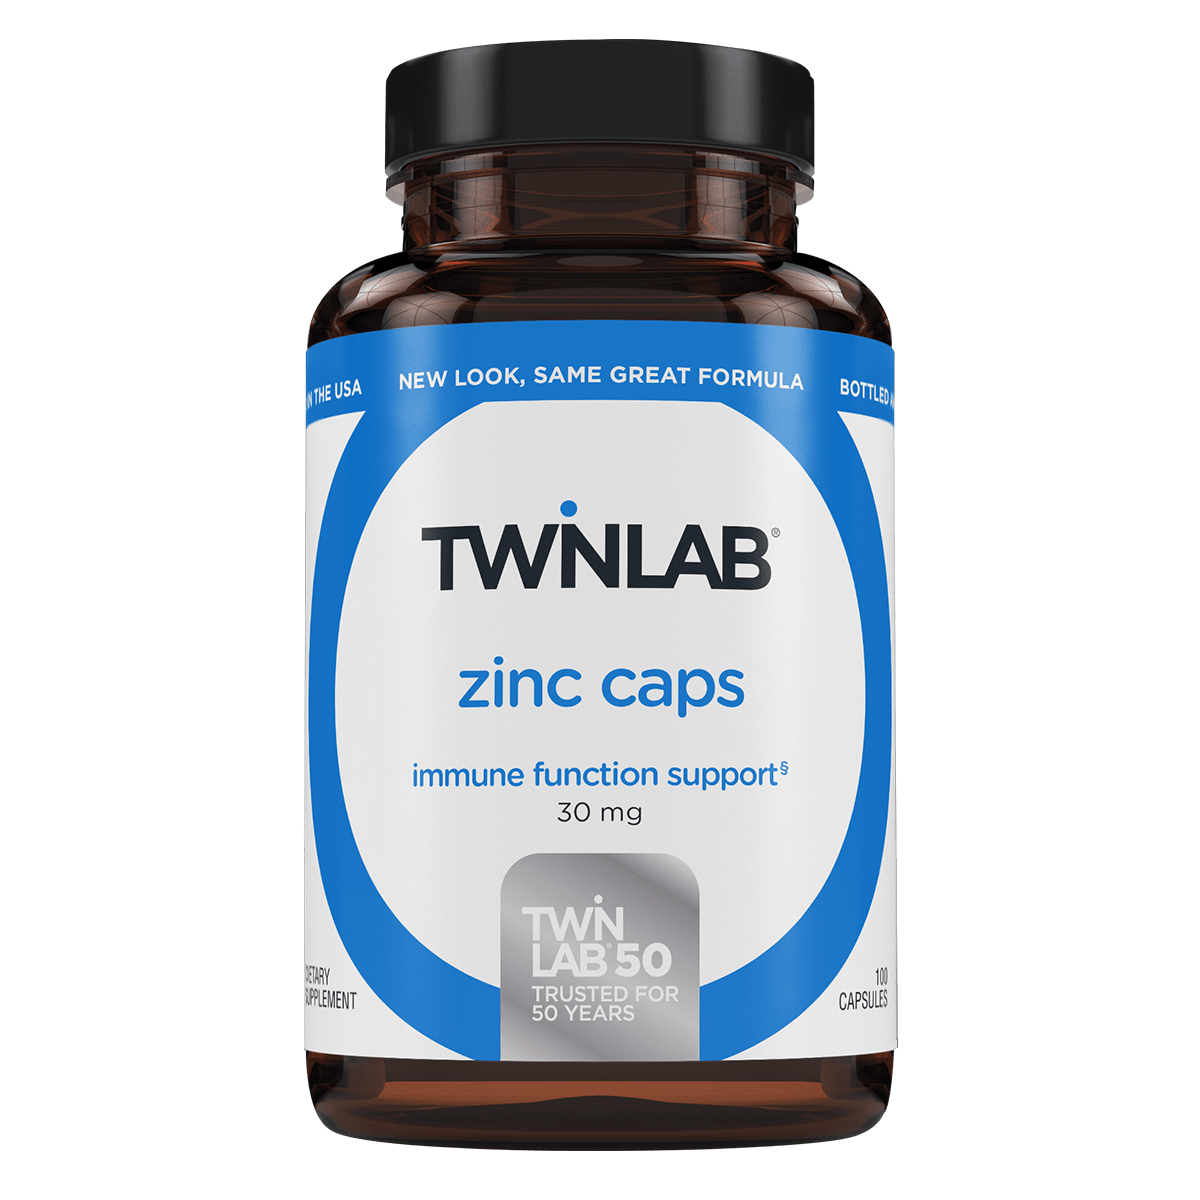 Twinlab® Zinc Caps deliver 30 mg of this essential mineral in just one capsule a day.